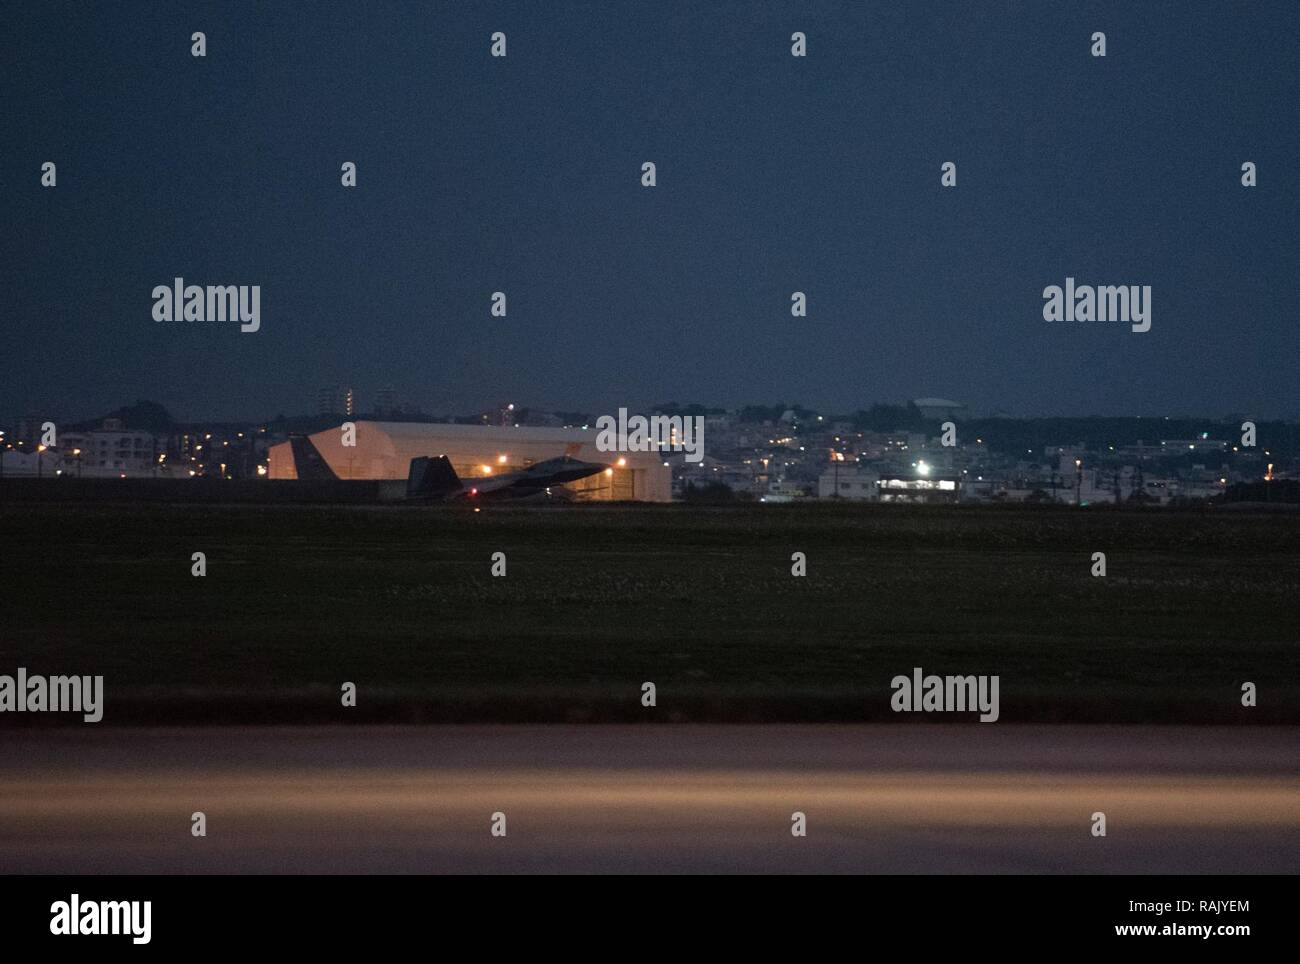 U.S. Air Force F-22 Raptors from the 90th Fighter Squadron arrive at Kadena Air Base, Japan, Feb. 7, 2017, before traveling on to Royal Australian Air Force Base, Tindal. The U.S. Air Force and the RAAF train together as part of the U.S. and Australian Enhanced Air Cooperation Agreement. Enhanced air cooperation increases both the U.S. and Australia's combined capabilities, improving security and stability throughout the Indo-Asia-Pacific region. - Stock Image